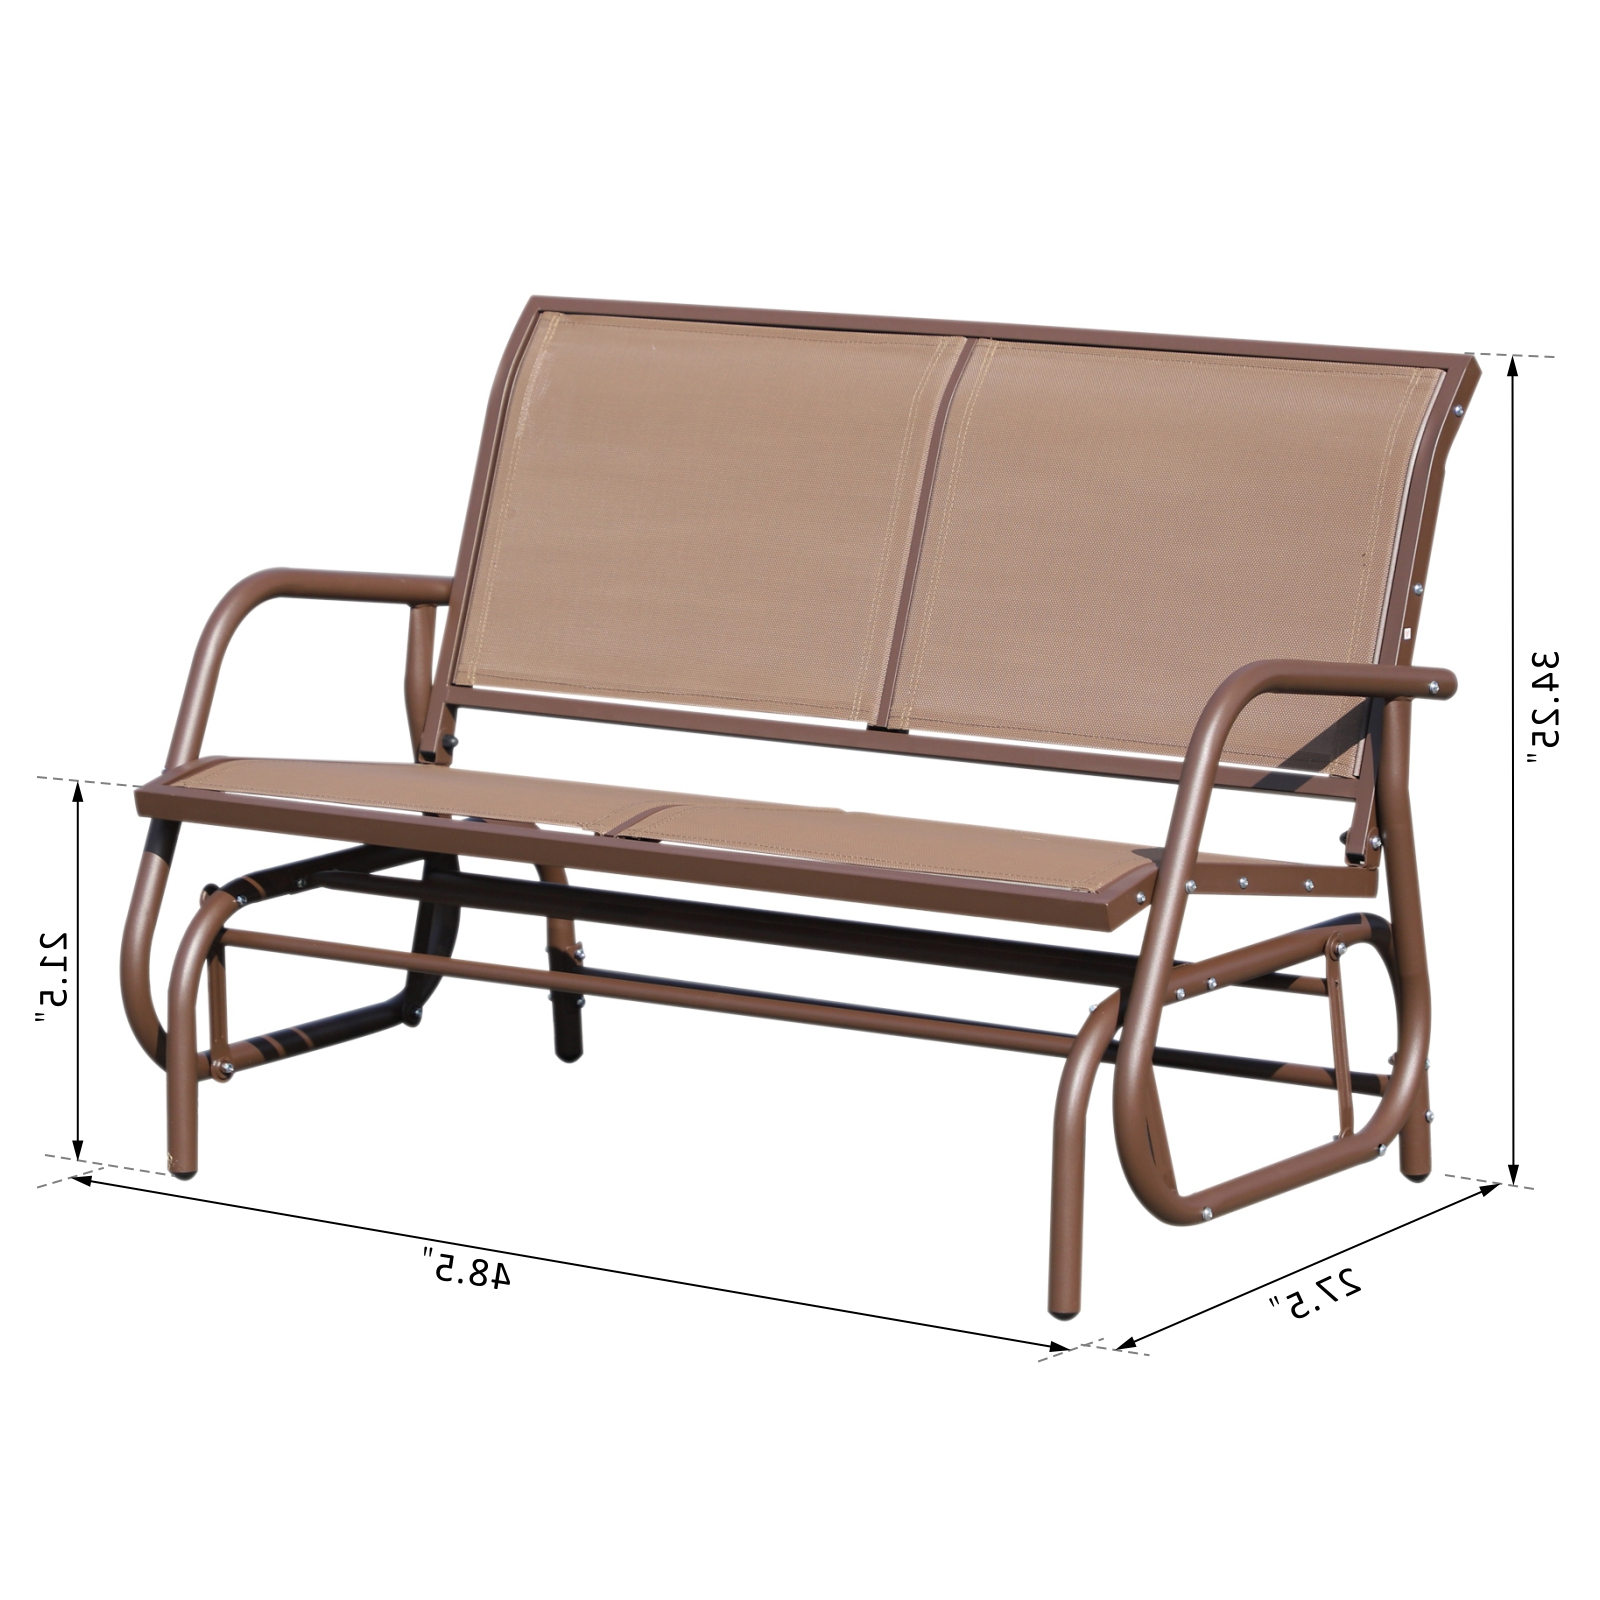 Favorite Outsunny Patio Double Glider Outdoor Steel Sling Fabric Bench Swing Chair R Heavy Duty Porch Rocker Garden Loveseat Brown Regarding Outdoor Fabric Glider Benches (View 17 of 30)